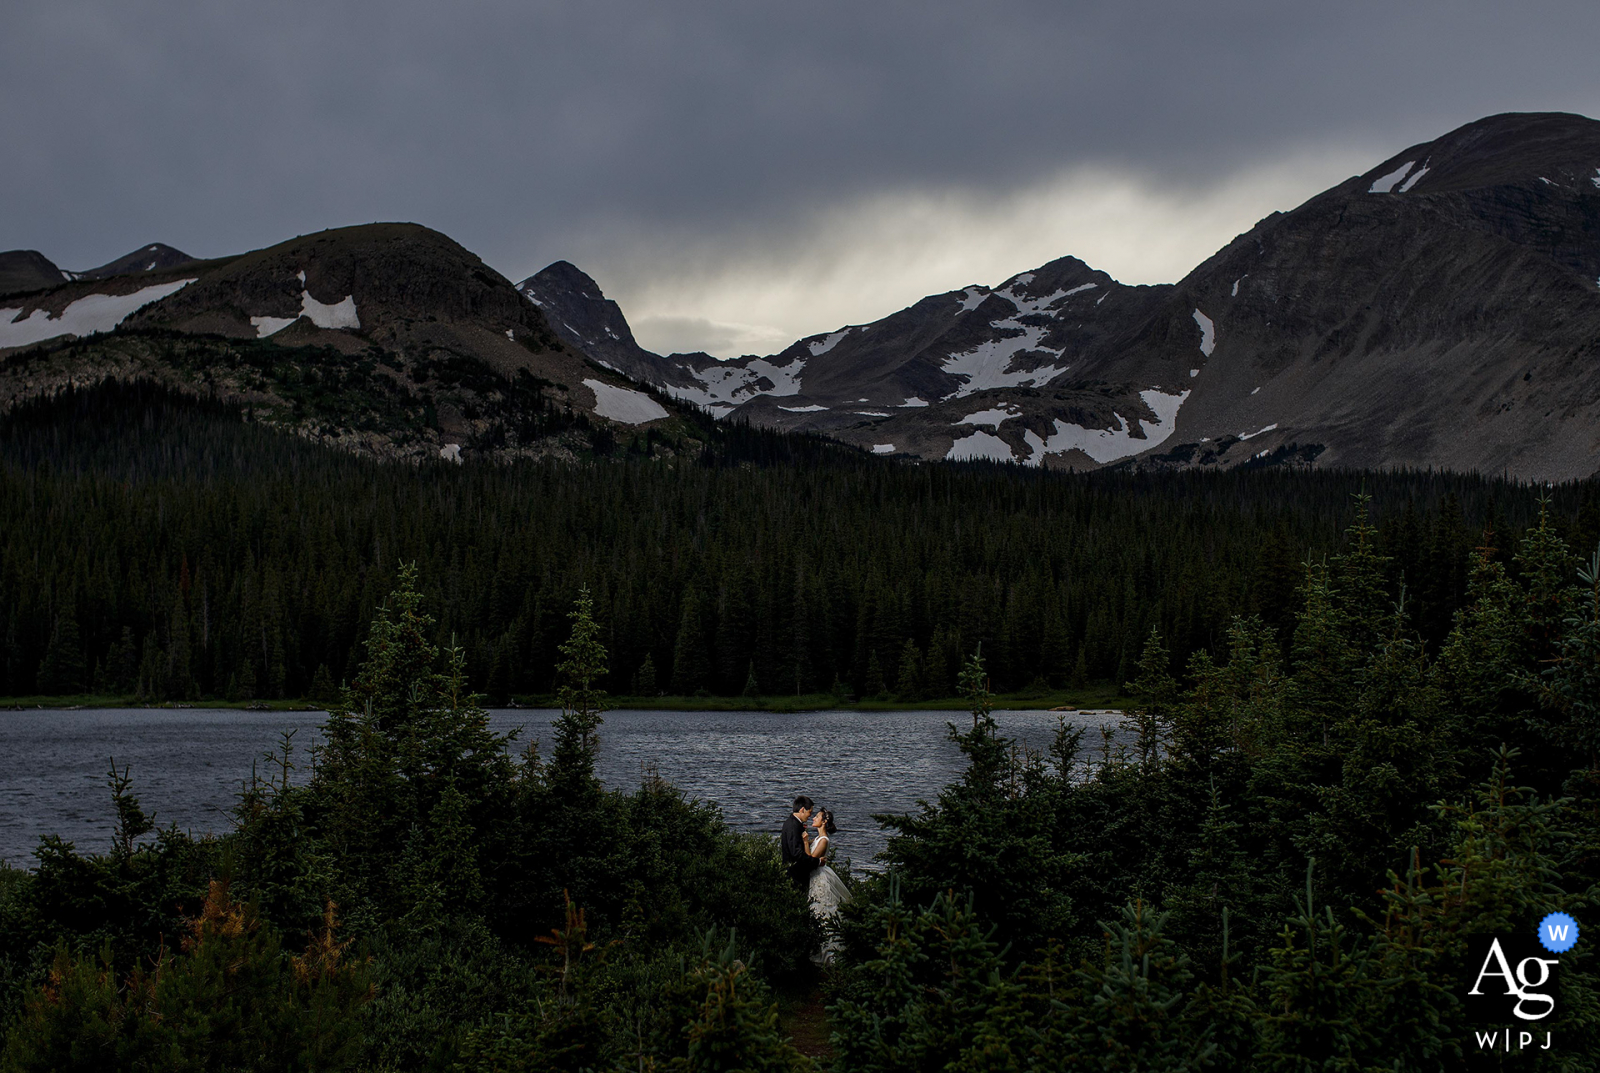 The bride and groom pose together for a wedding portrait near Brainard Lake during their Colorado mountain elopement